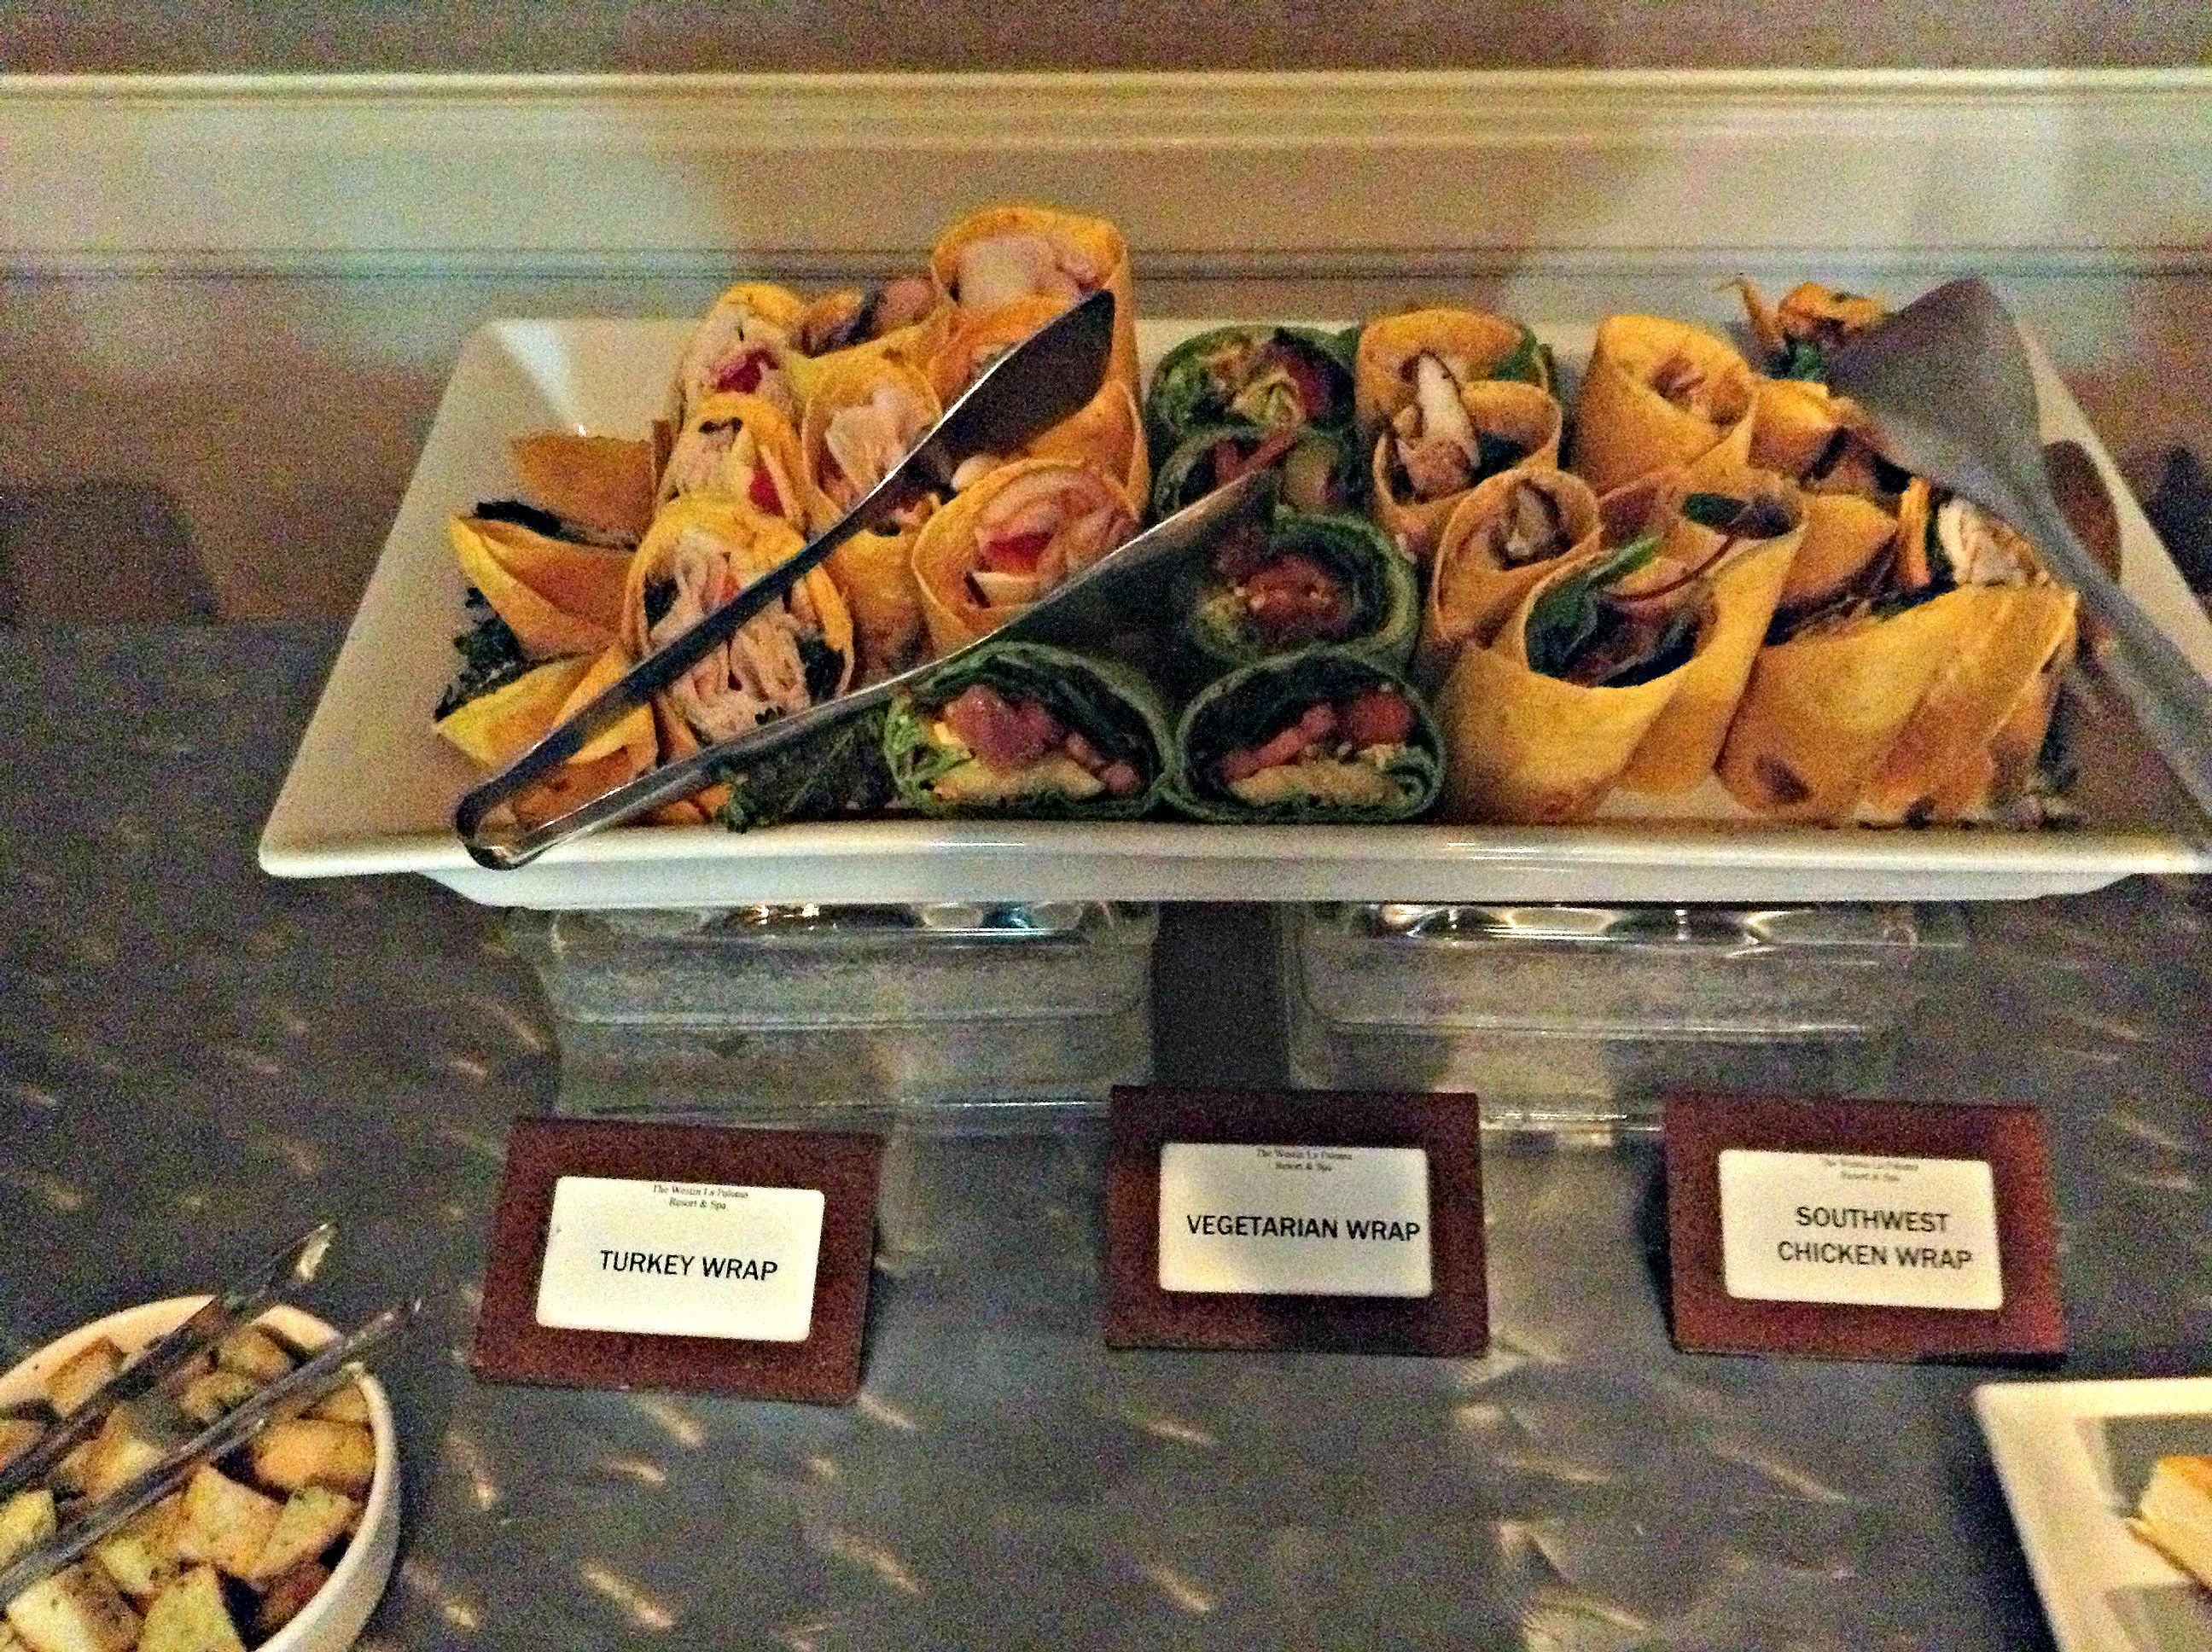 Our Turkey Vegetarian And Southwest Chicken Wraps The Westin La